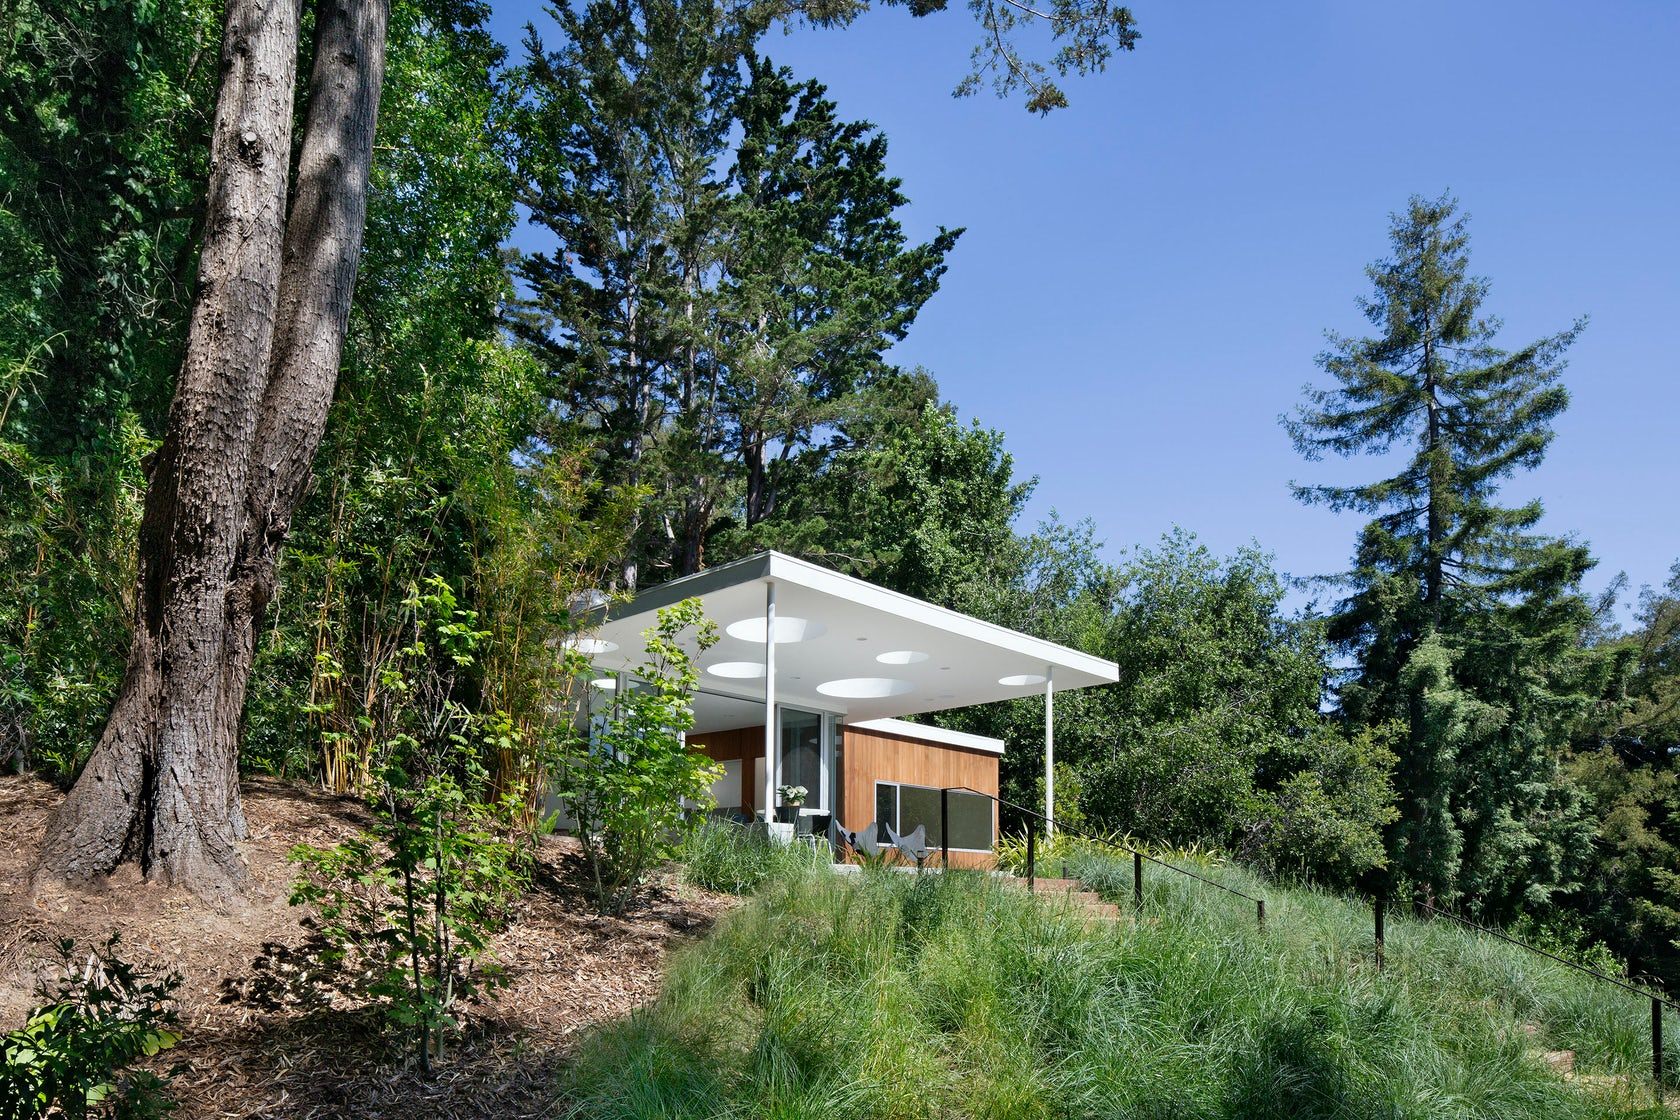 Mill valley guesthouse architizer for Valley mill summer camp